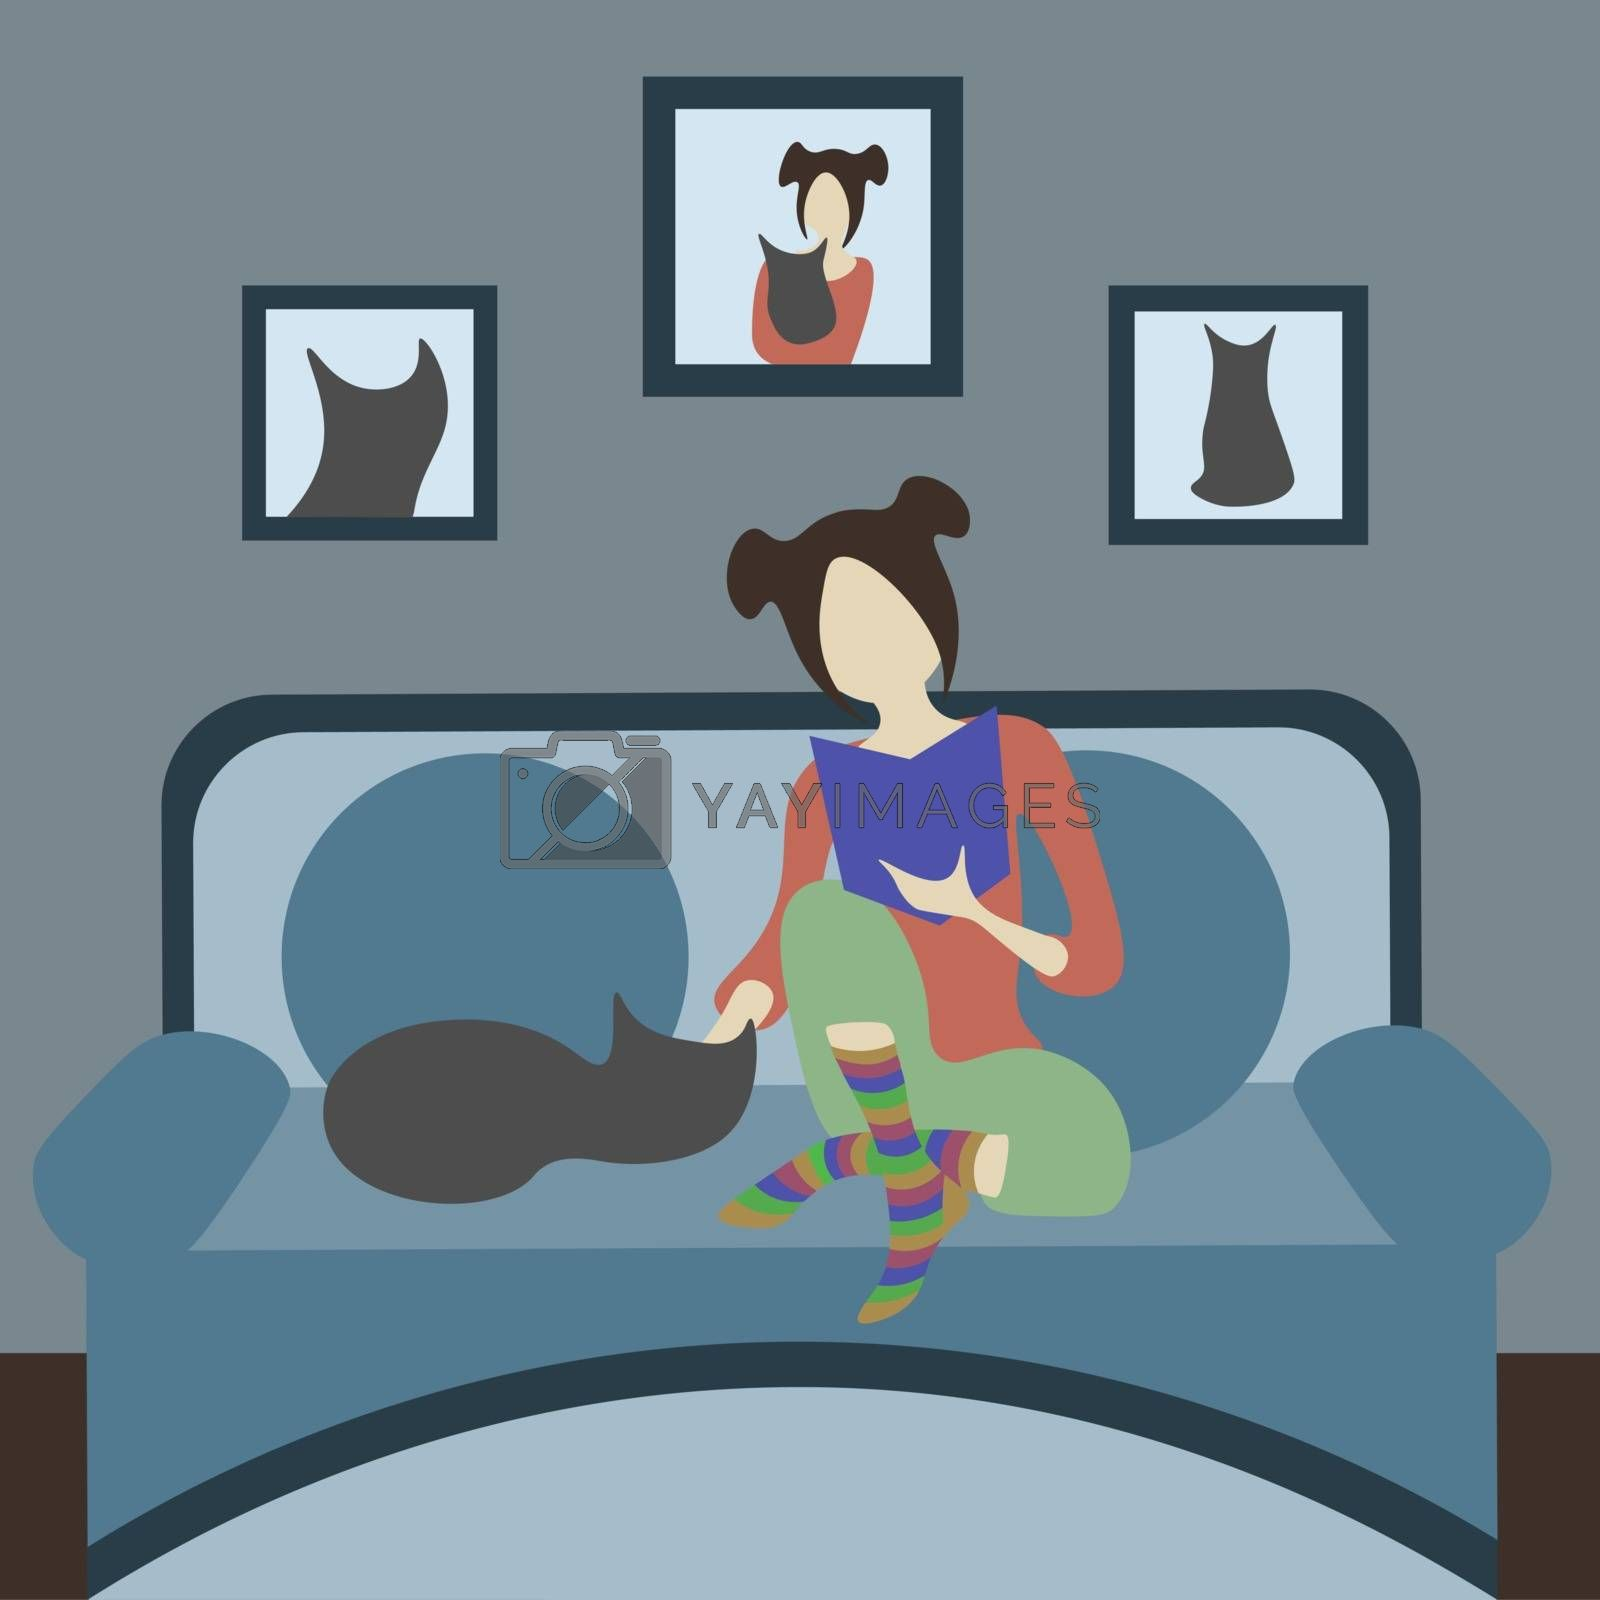 Cat person: girl in pajamas and striped socks petting a cat. Their photos on the wall